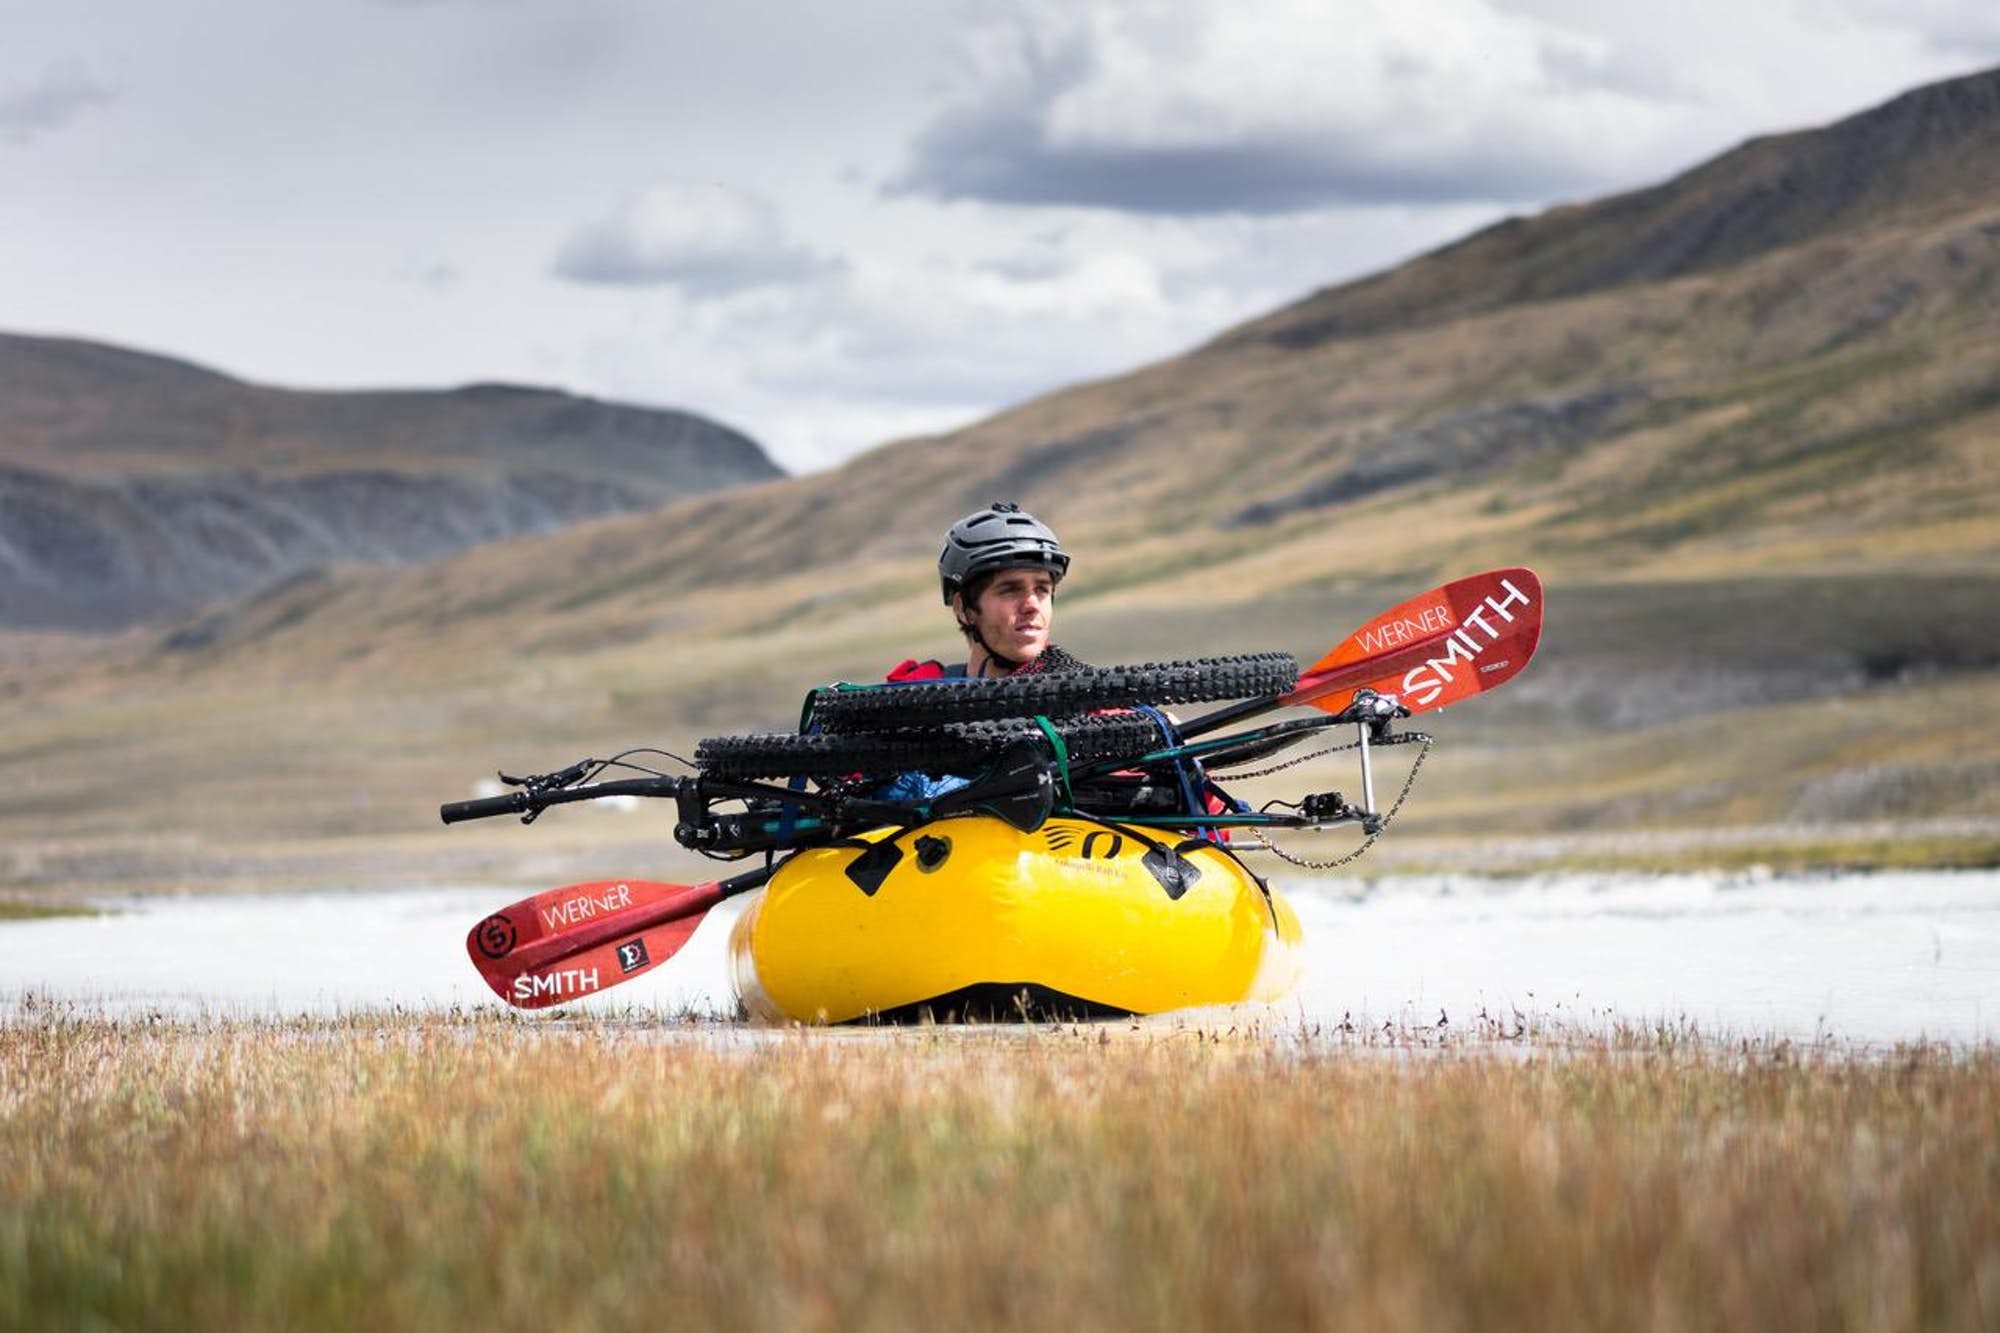 How To Submit   Your Bikerafting Adventure     Click Here